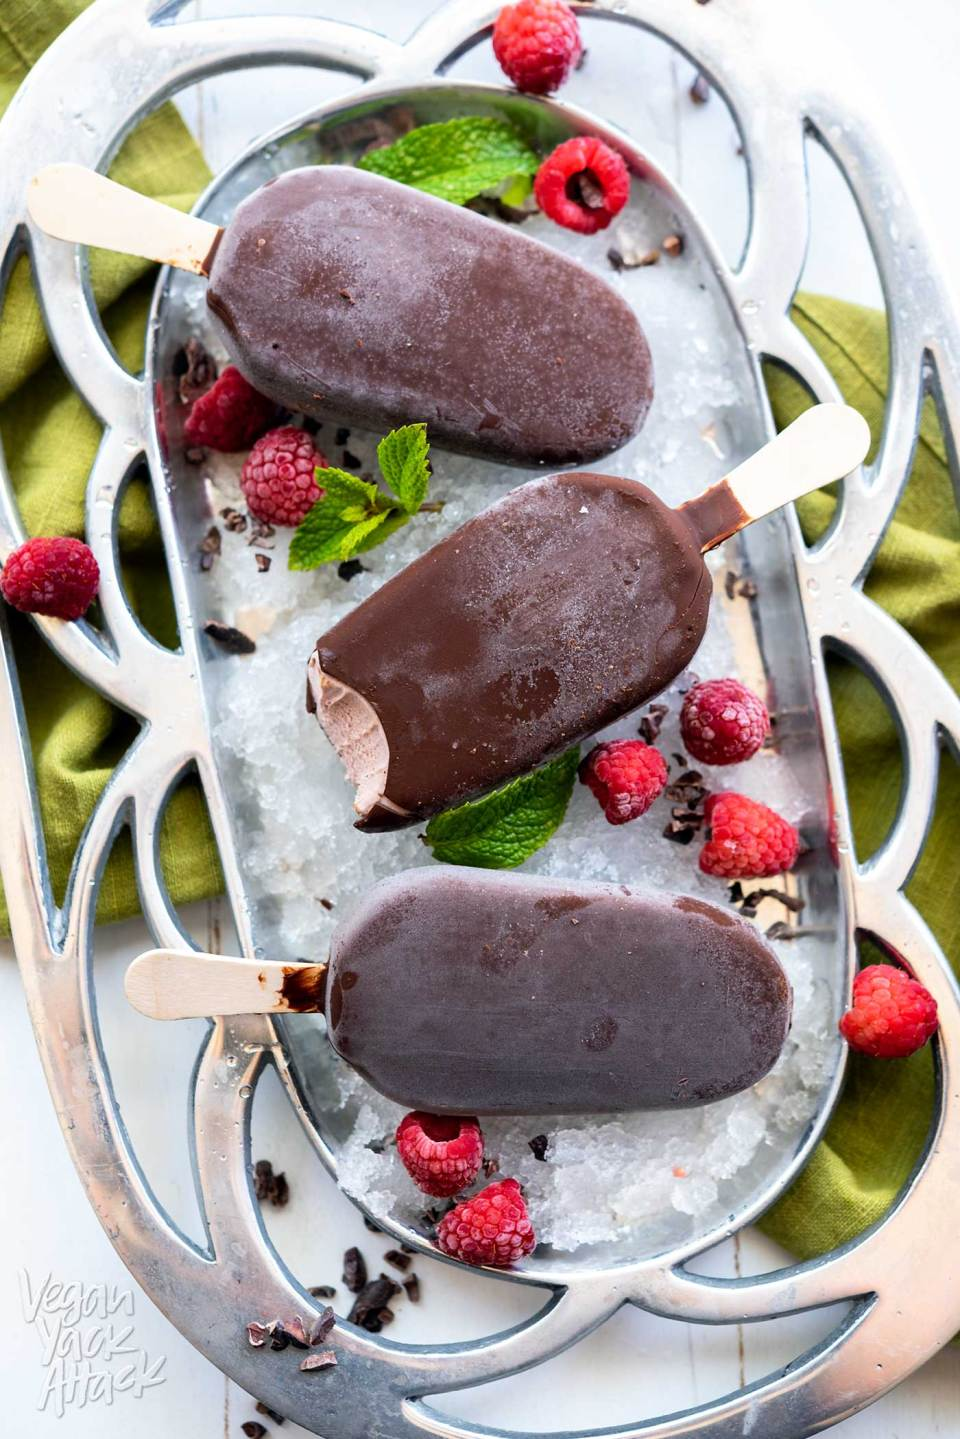 Summer is such a bright and happy season, let's have another reason to look forward to it with these Raspberry Acai Chocolate Bars! Here are three ways to make the best of both. #vegan #soyfree #dairyfree #glutenfree